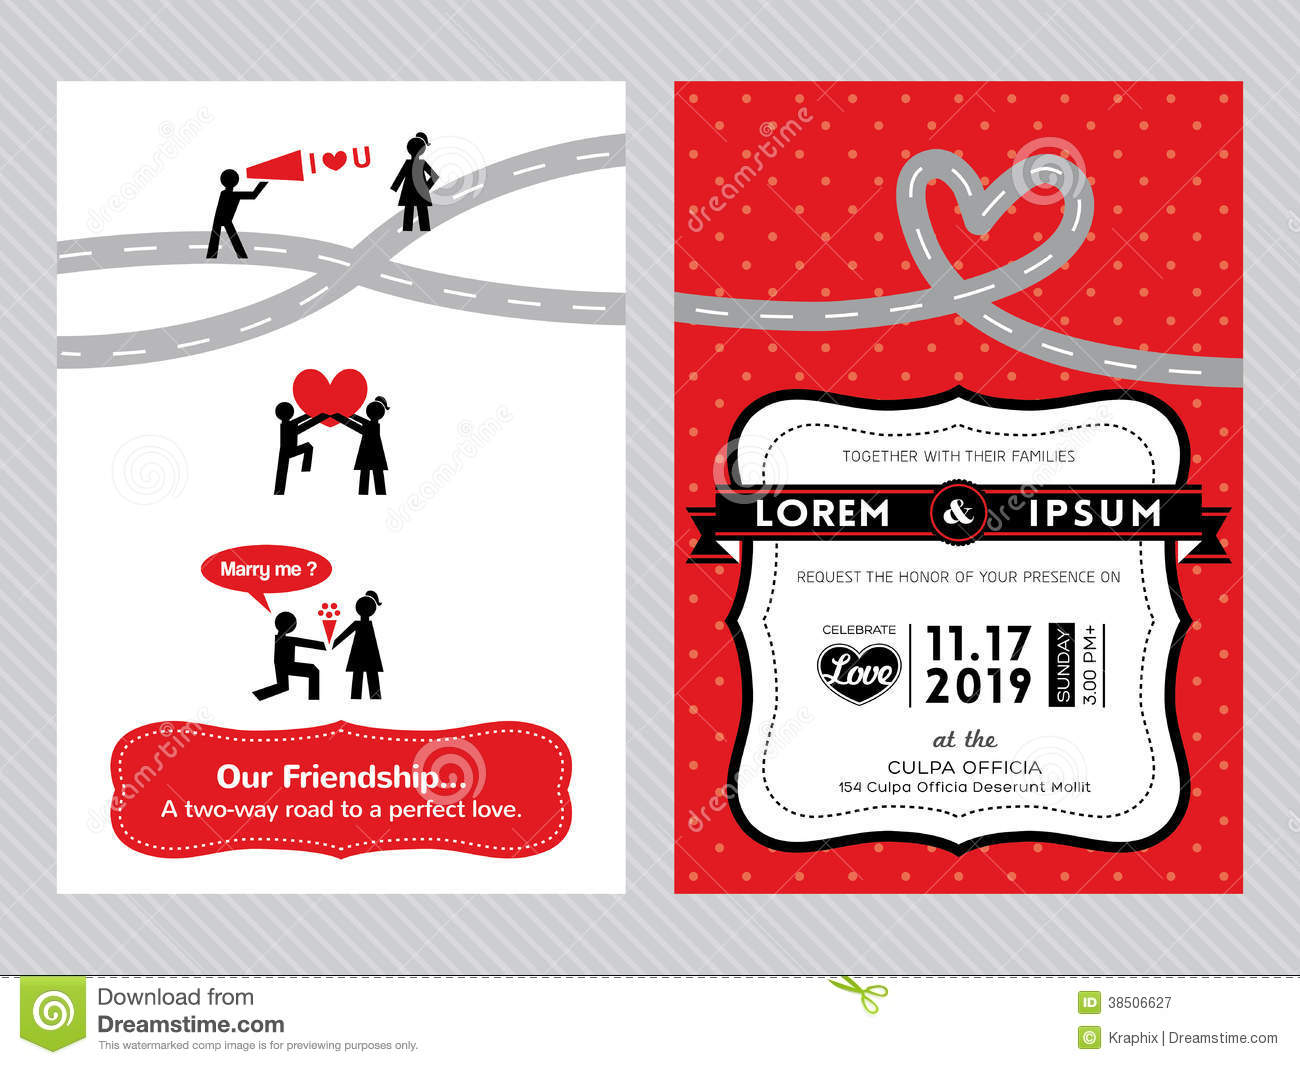 Free Wedding Invitation Card Templates - Unitedijawstates.com